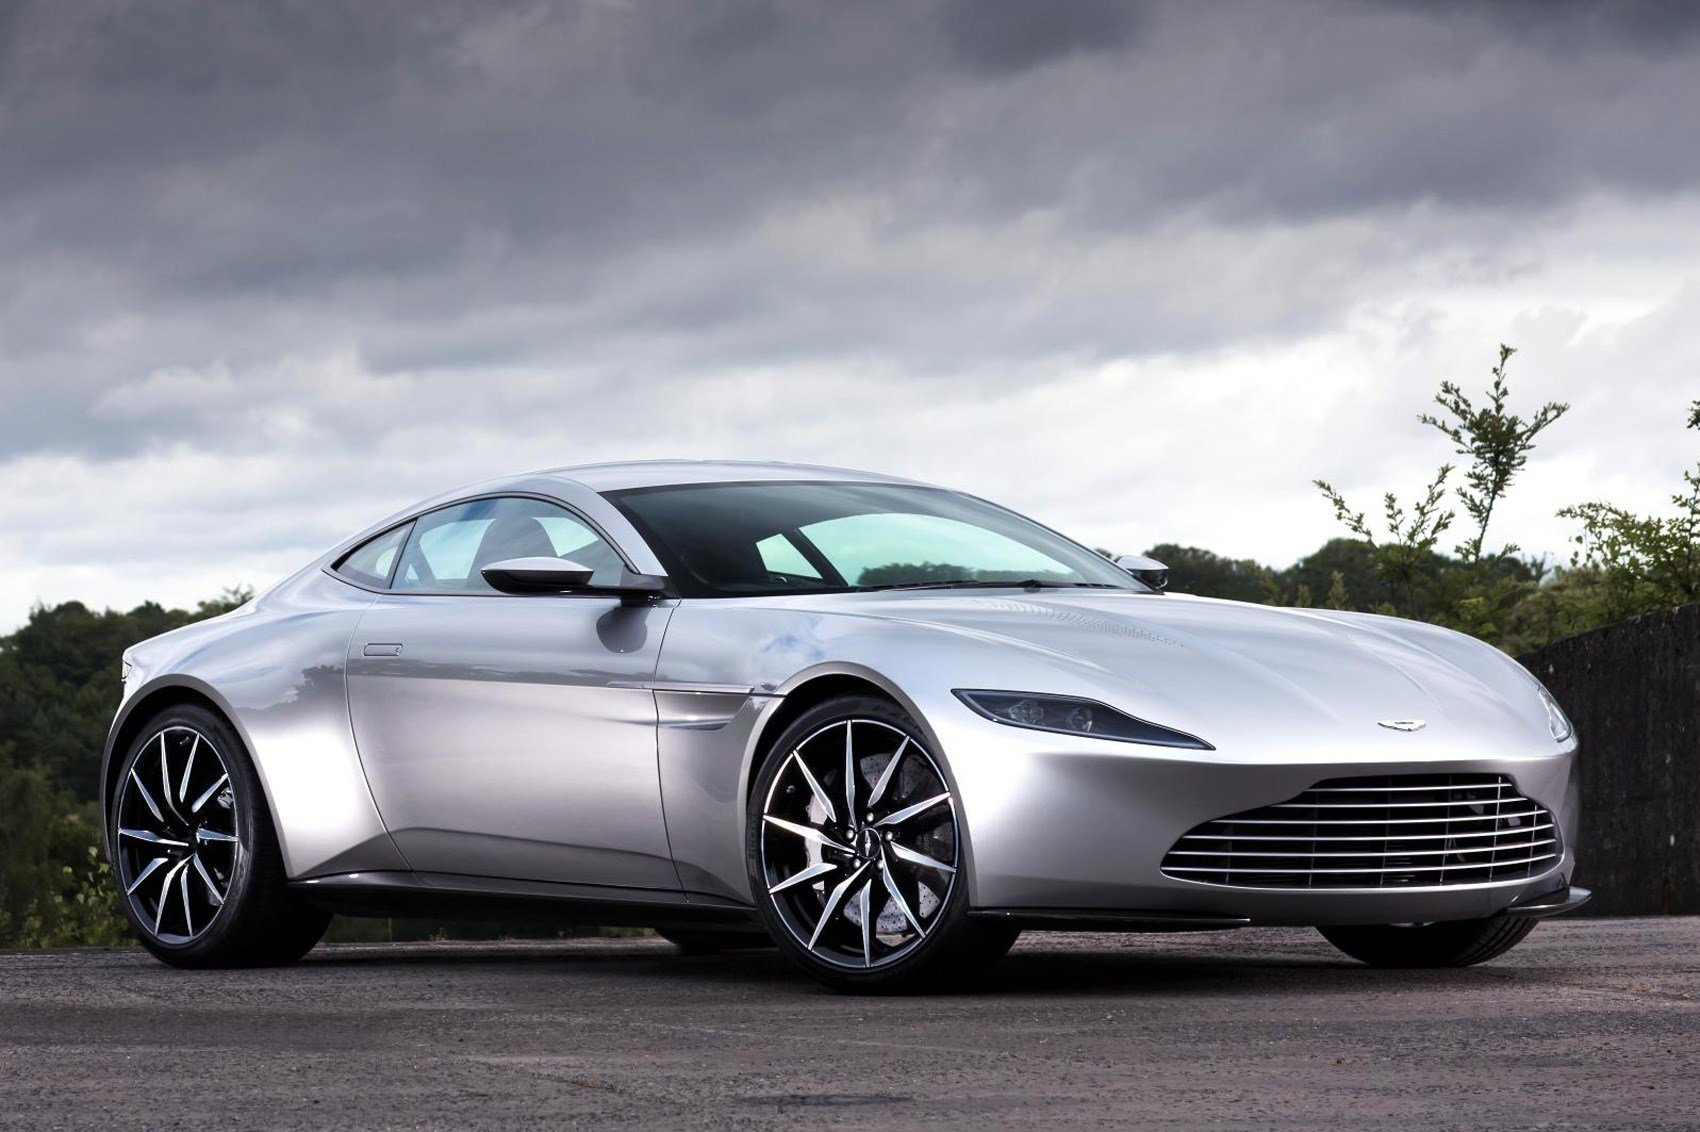 Latest New 2018 Aston Martin Vantage Pics Specs Prices By Car Free Download